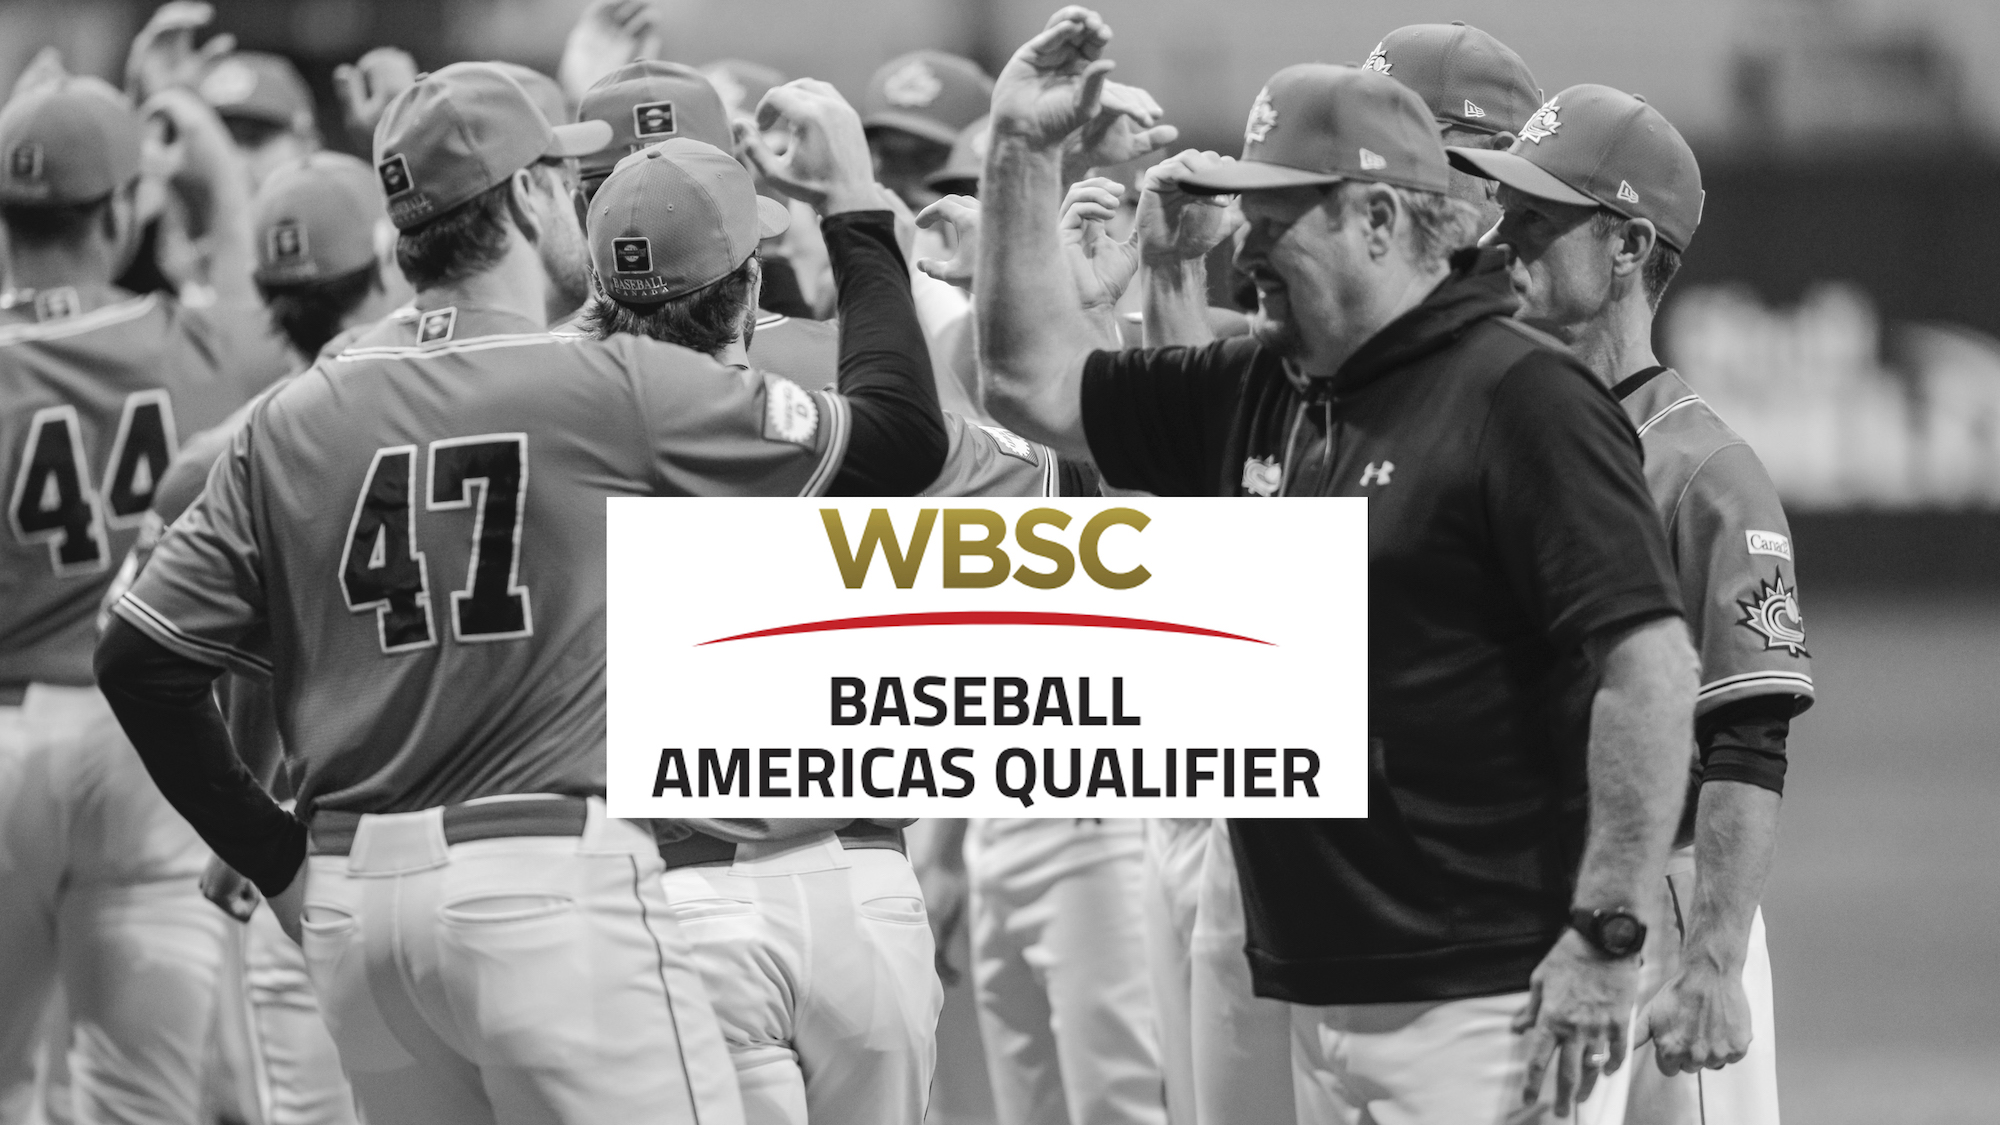 Schedule, dates, locations announced for WBSC Americas Baseball Olympic Qualifier